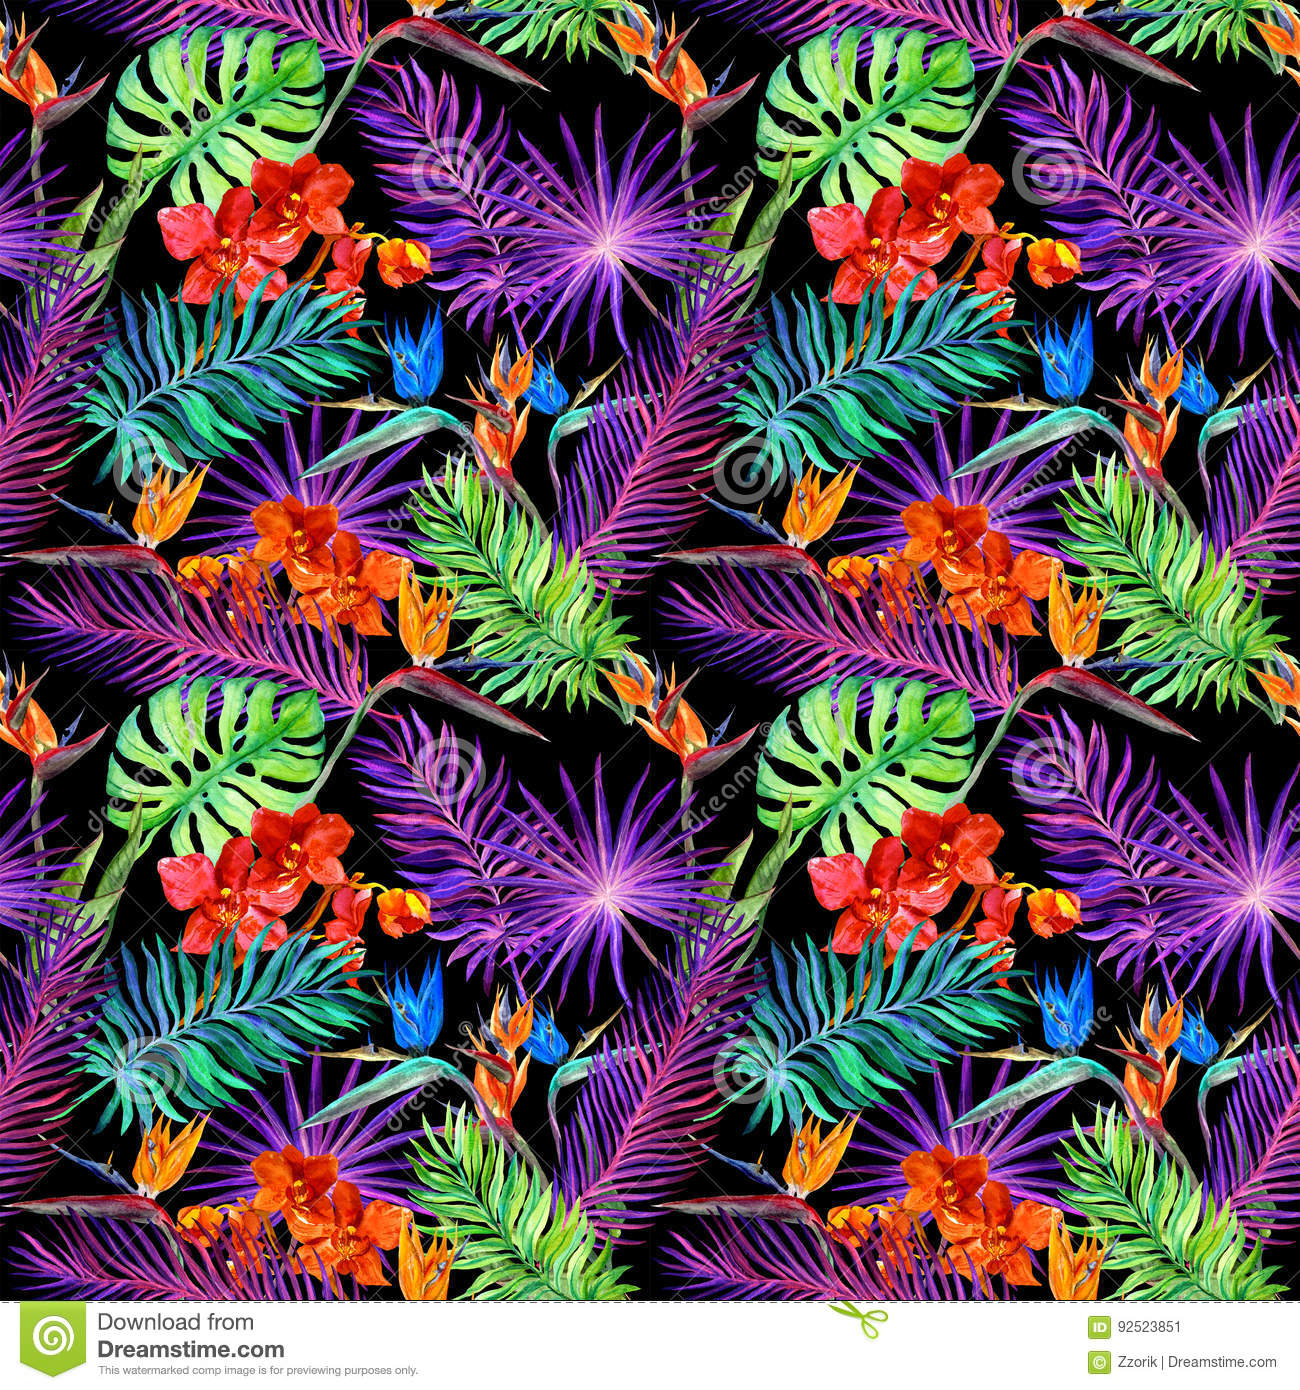 Tropical leaves exotic flowers in neon glow repeating hawaiian royalty free stock photo izmirmasajfo Images